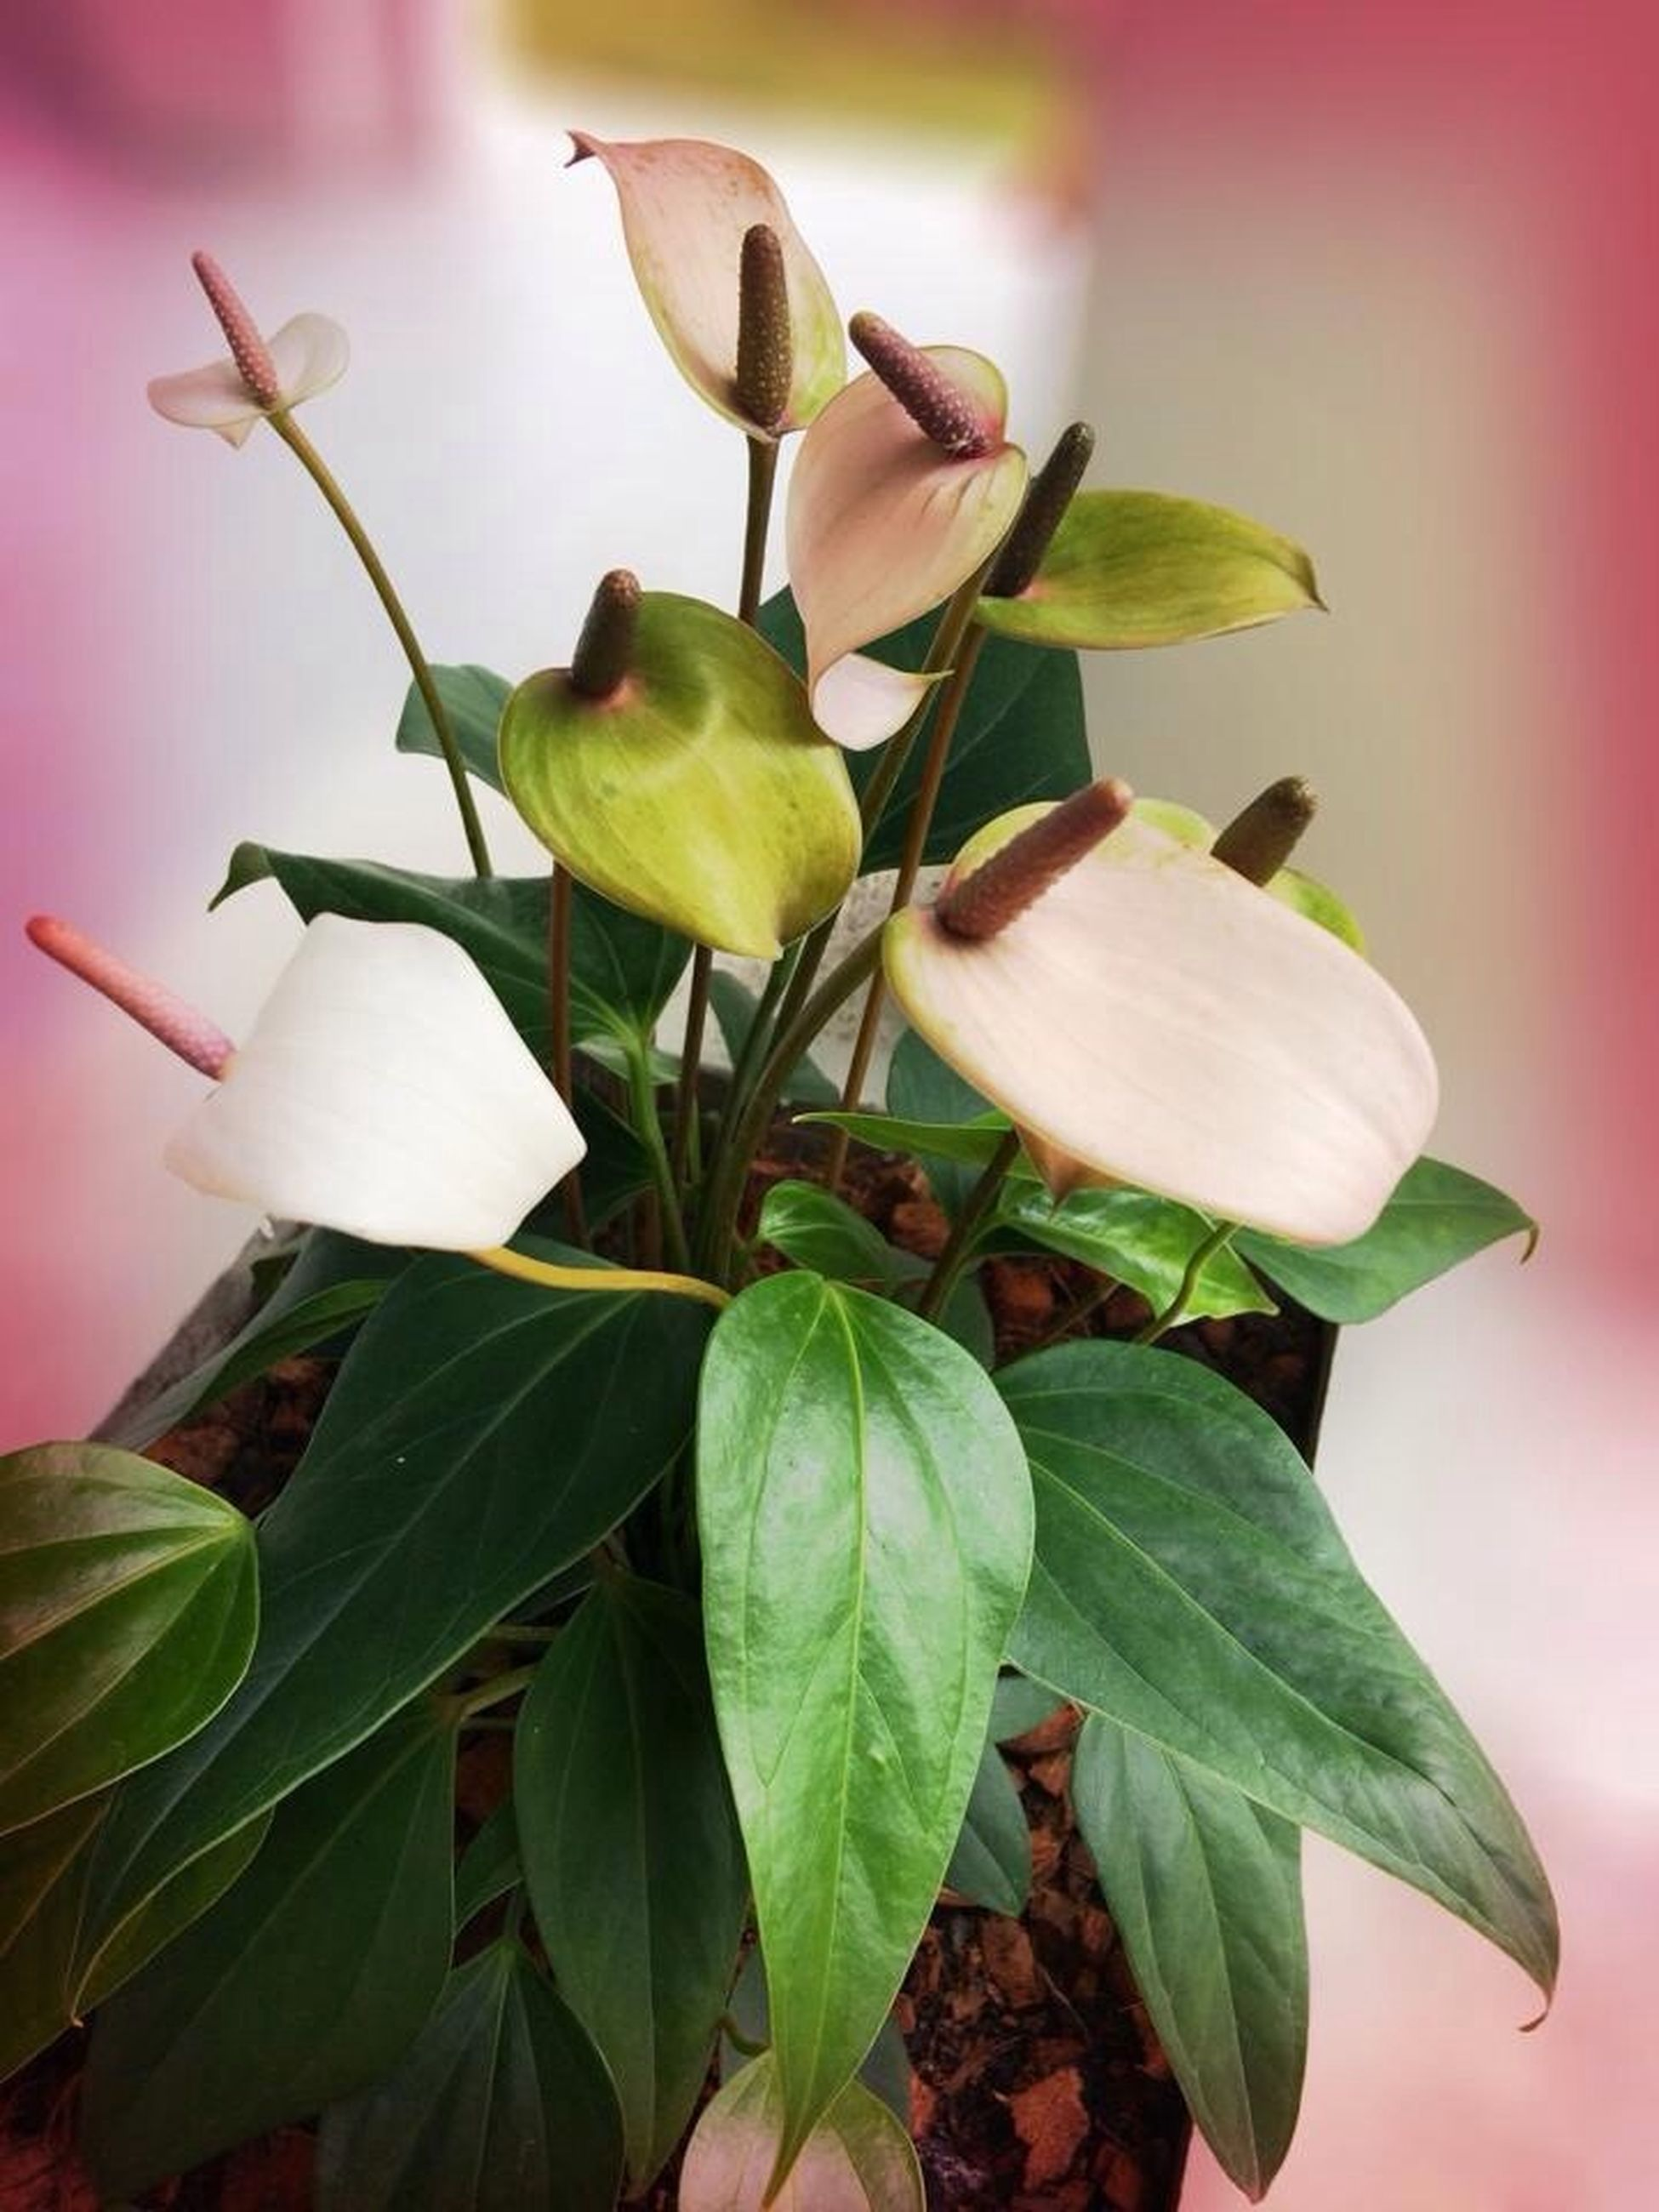 leaf, flower, freshness, growth, fragility, petal, close-up, plant, beauty in nature, nature, stem, flower head, bud, focus on foreground, green color, no people, blossom, indoors, in bloom, botany